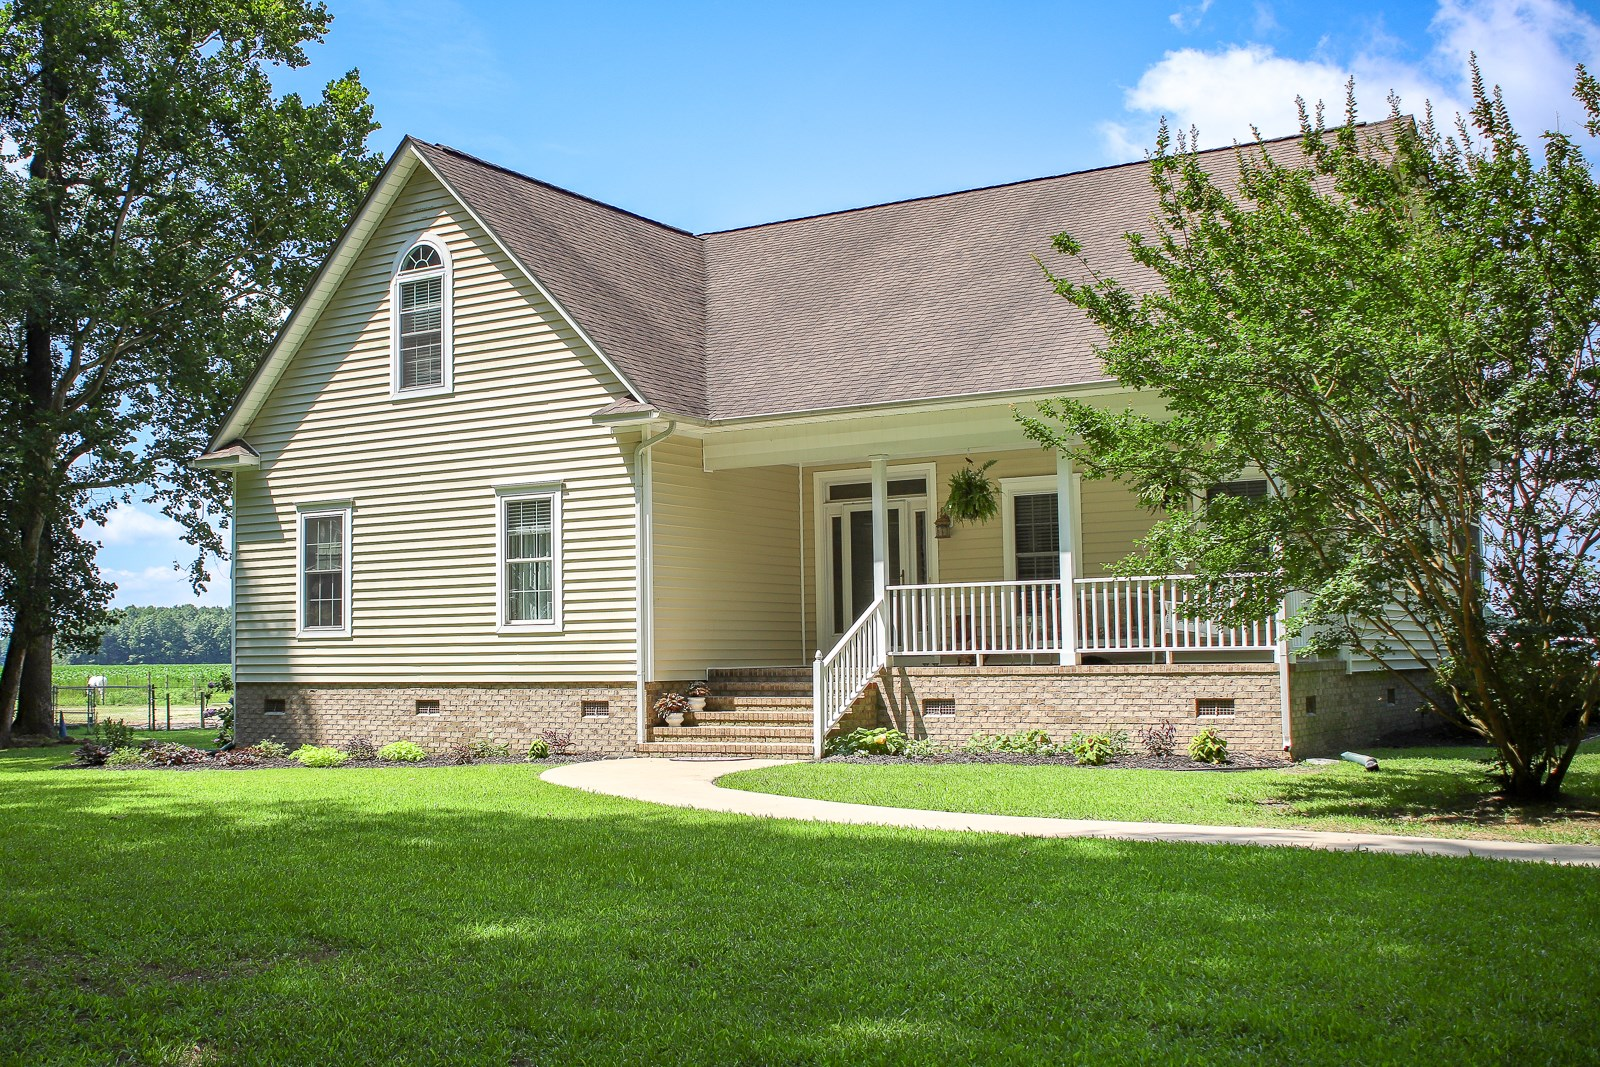 Tucked away country living:4 Bed/3 Bath with space to grow.